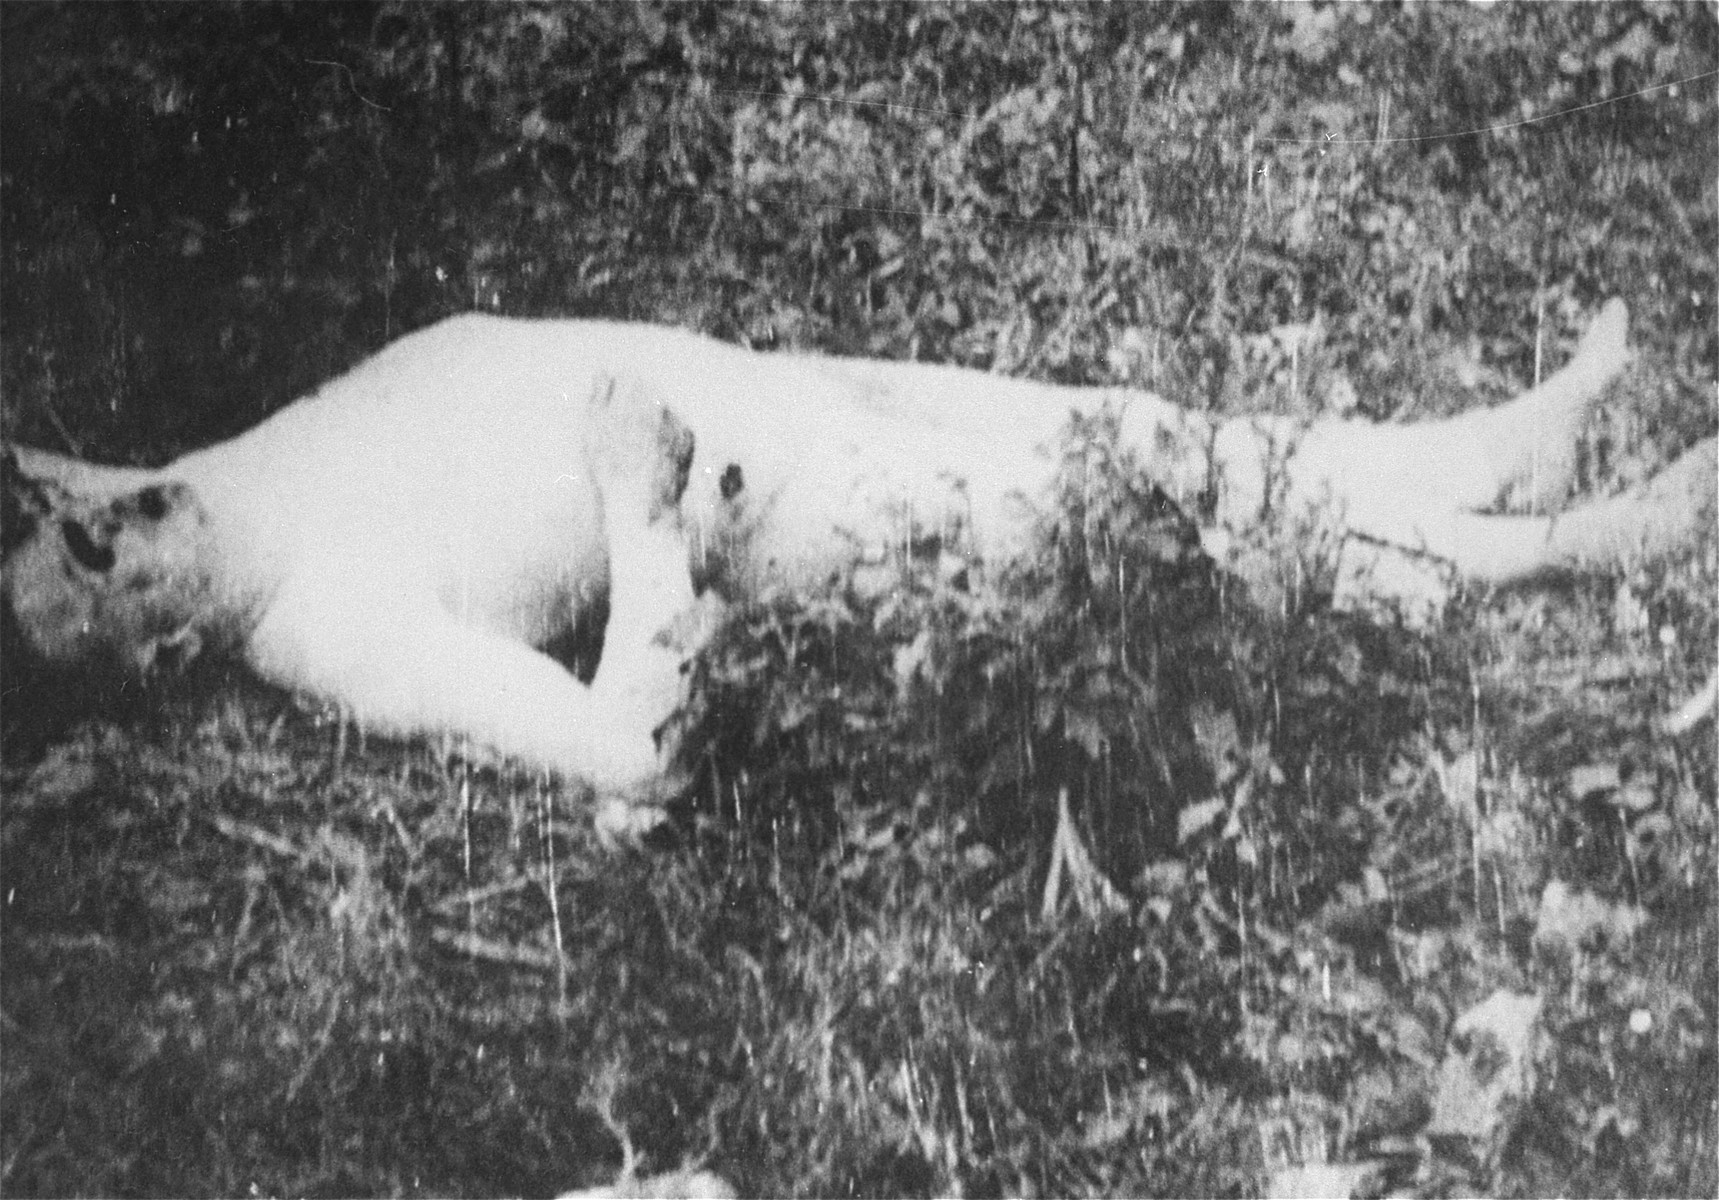 The body of a Romanian Jew who died on one of two death trains that left Iasi on June 30, 1941.  The first train was bound for Calarasi and the second for Podul Iloaiei.